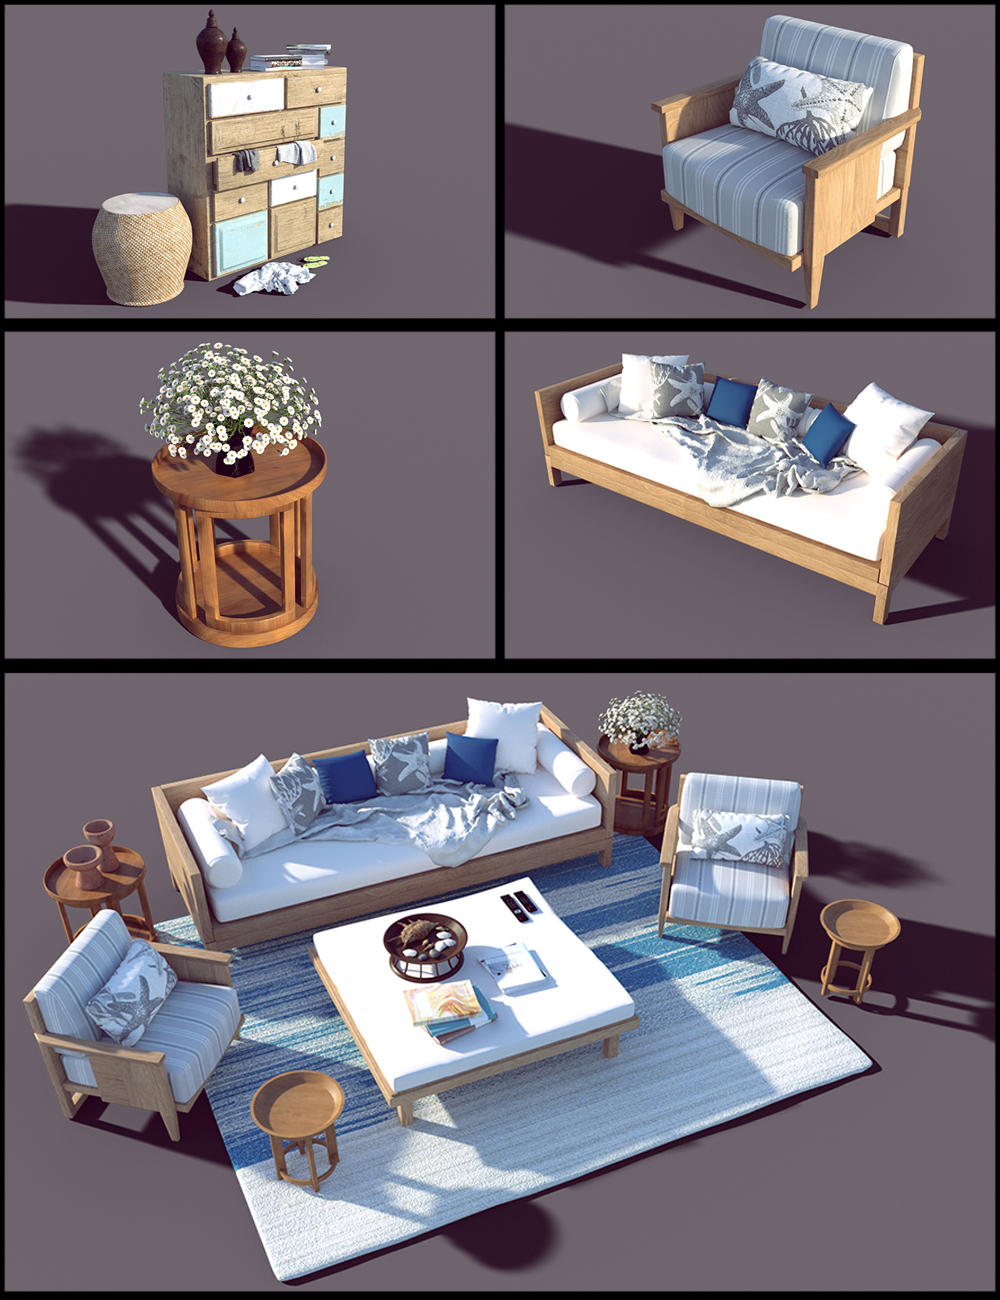 Honeymoon Living Room Props by: Polish, 3D Models by Daz 3D